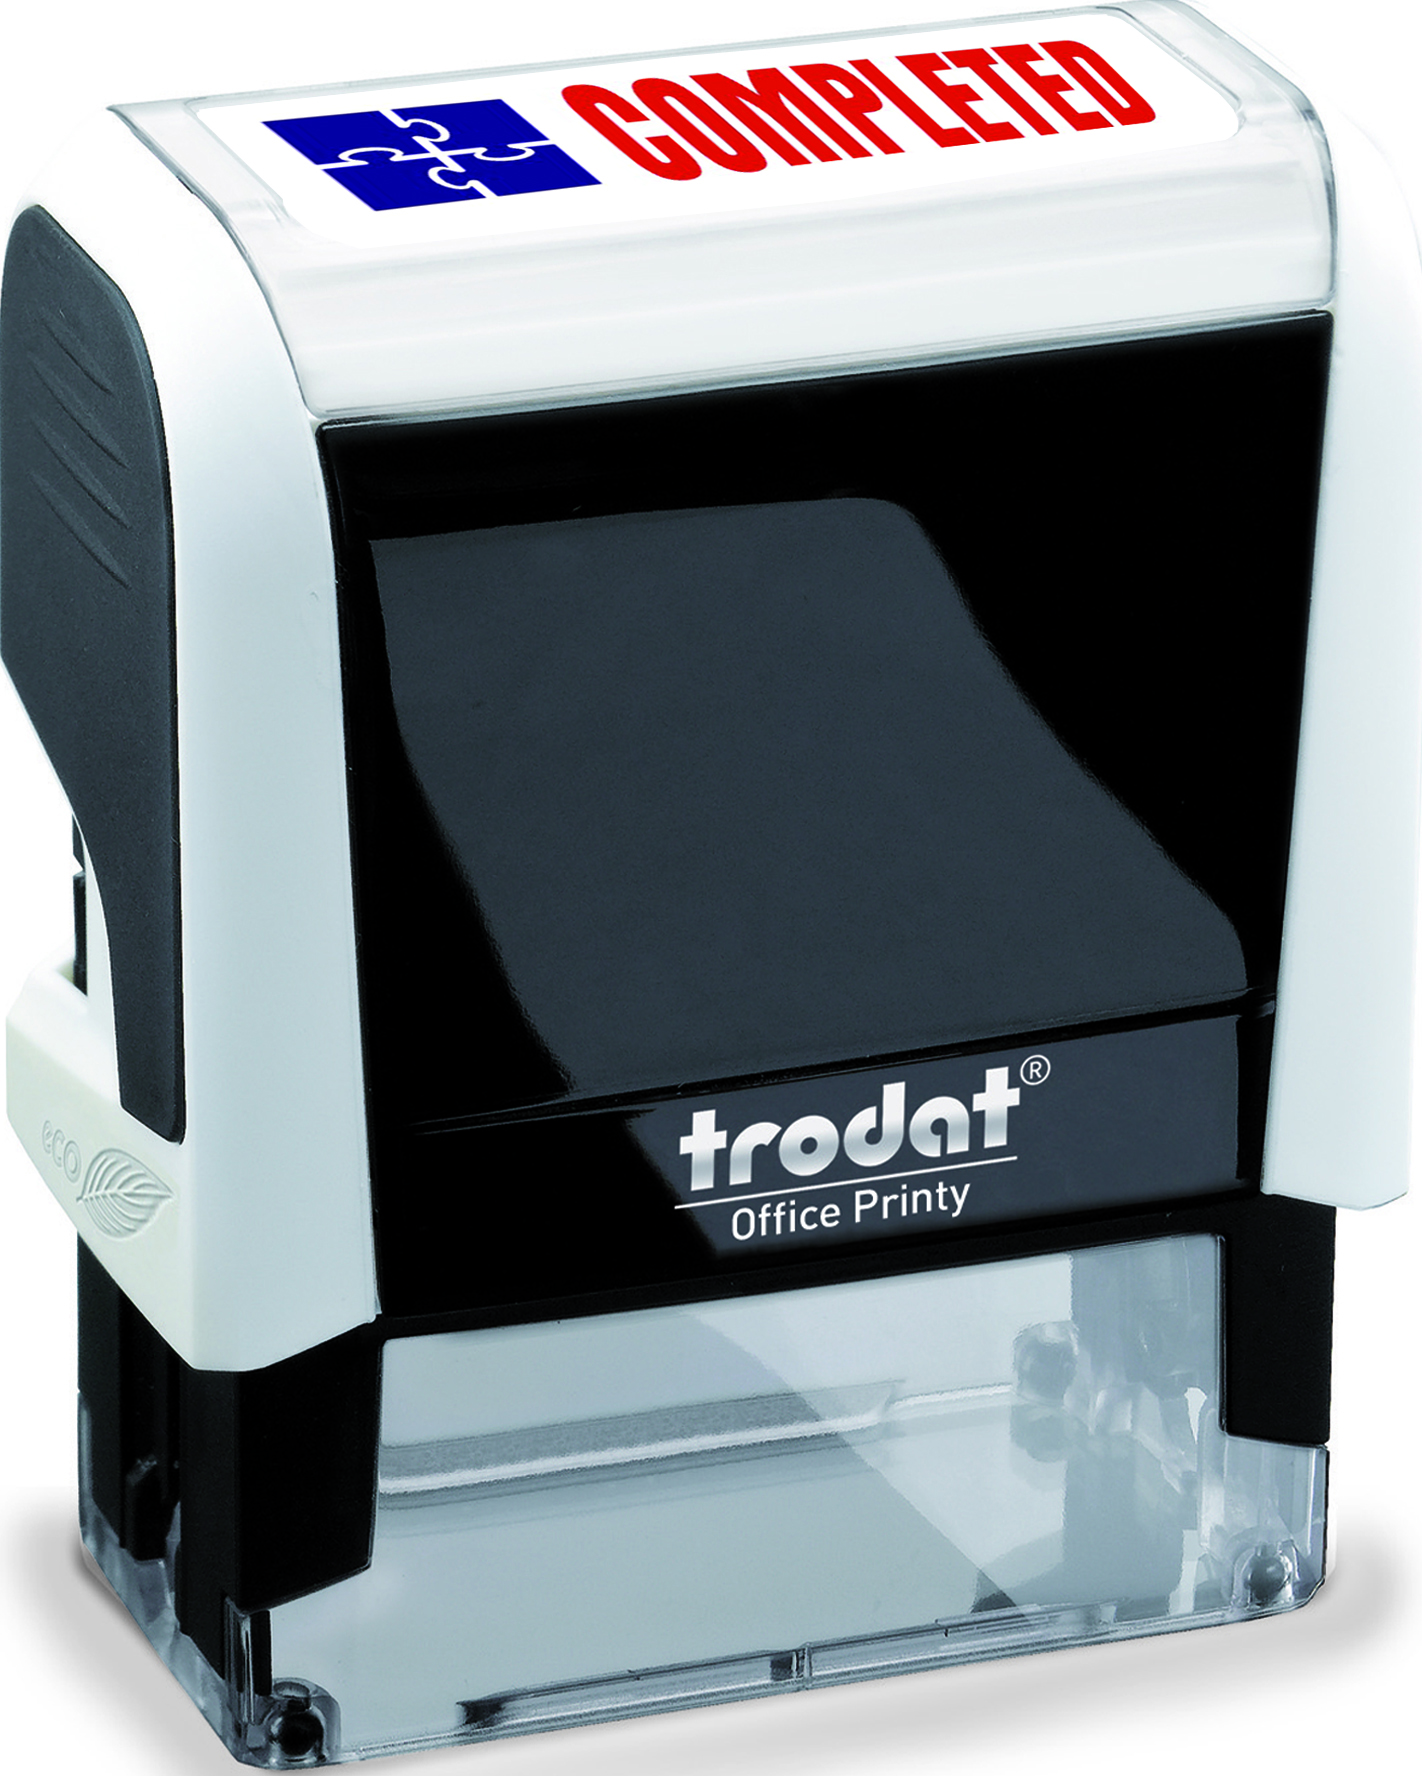 Trodat Office Printy 4912 Self Inking Stamp Size 45 X 17mm This Prints The Word Completed In Red And Blue Ink On To Your Doents